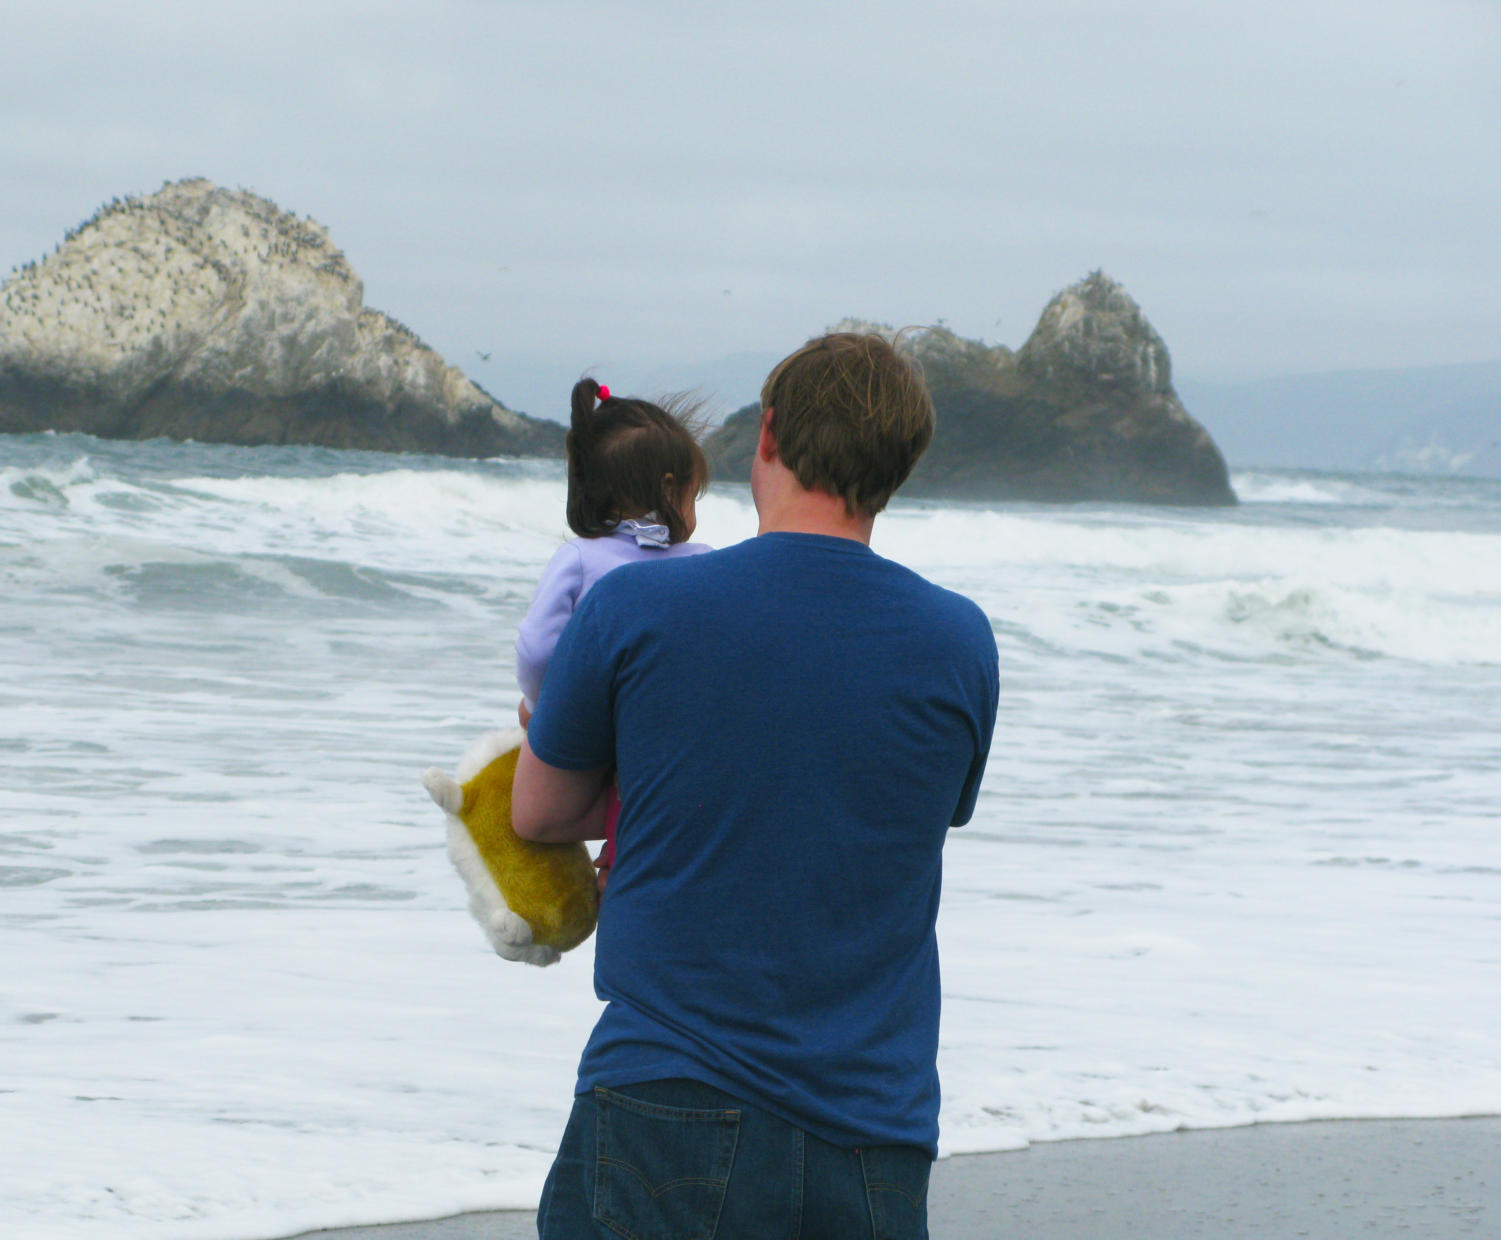 A+child+holds+onto+her+corgi+stuffed+animal+as+she+watches+the+waves+with+her+father.